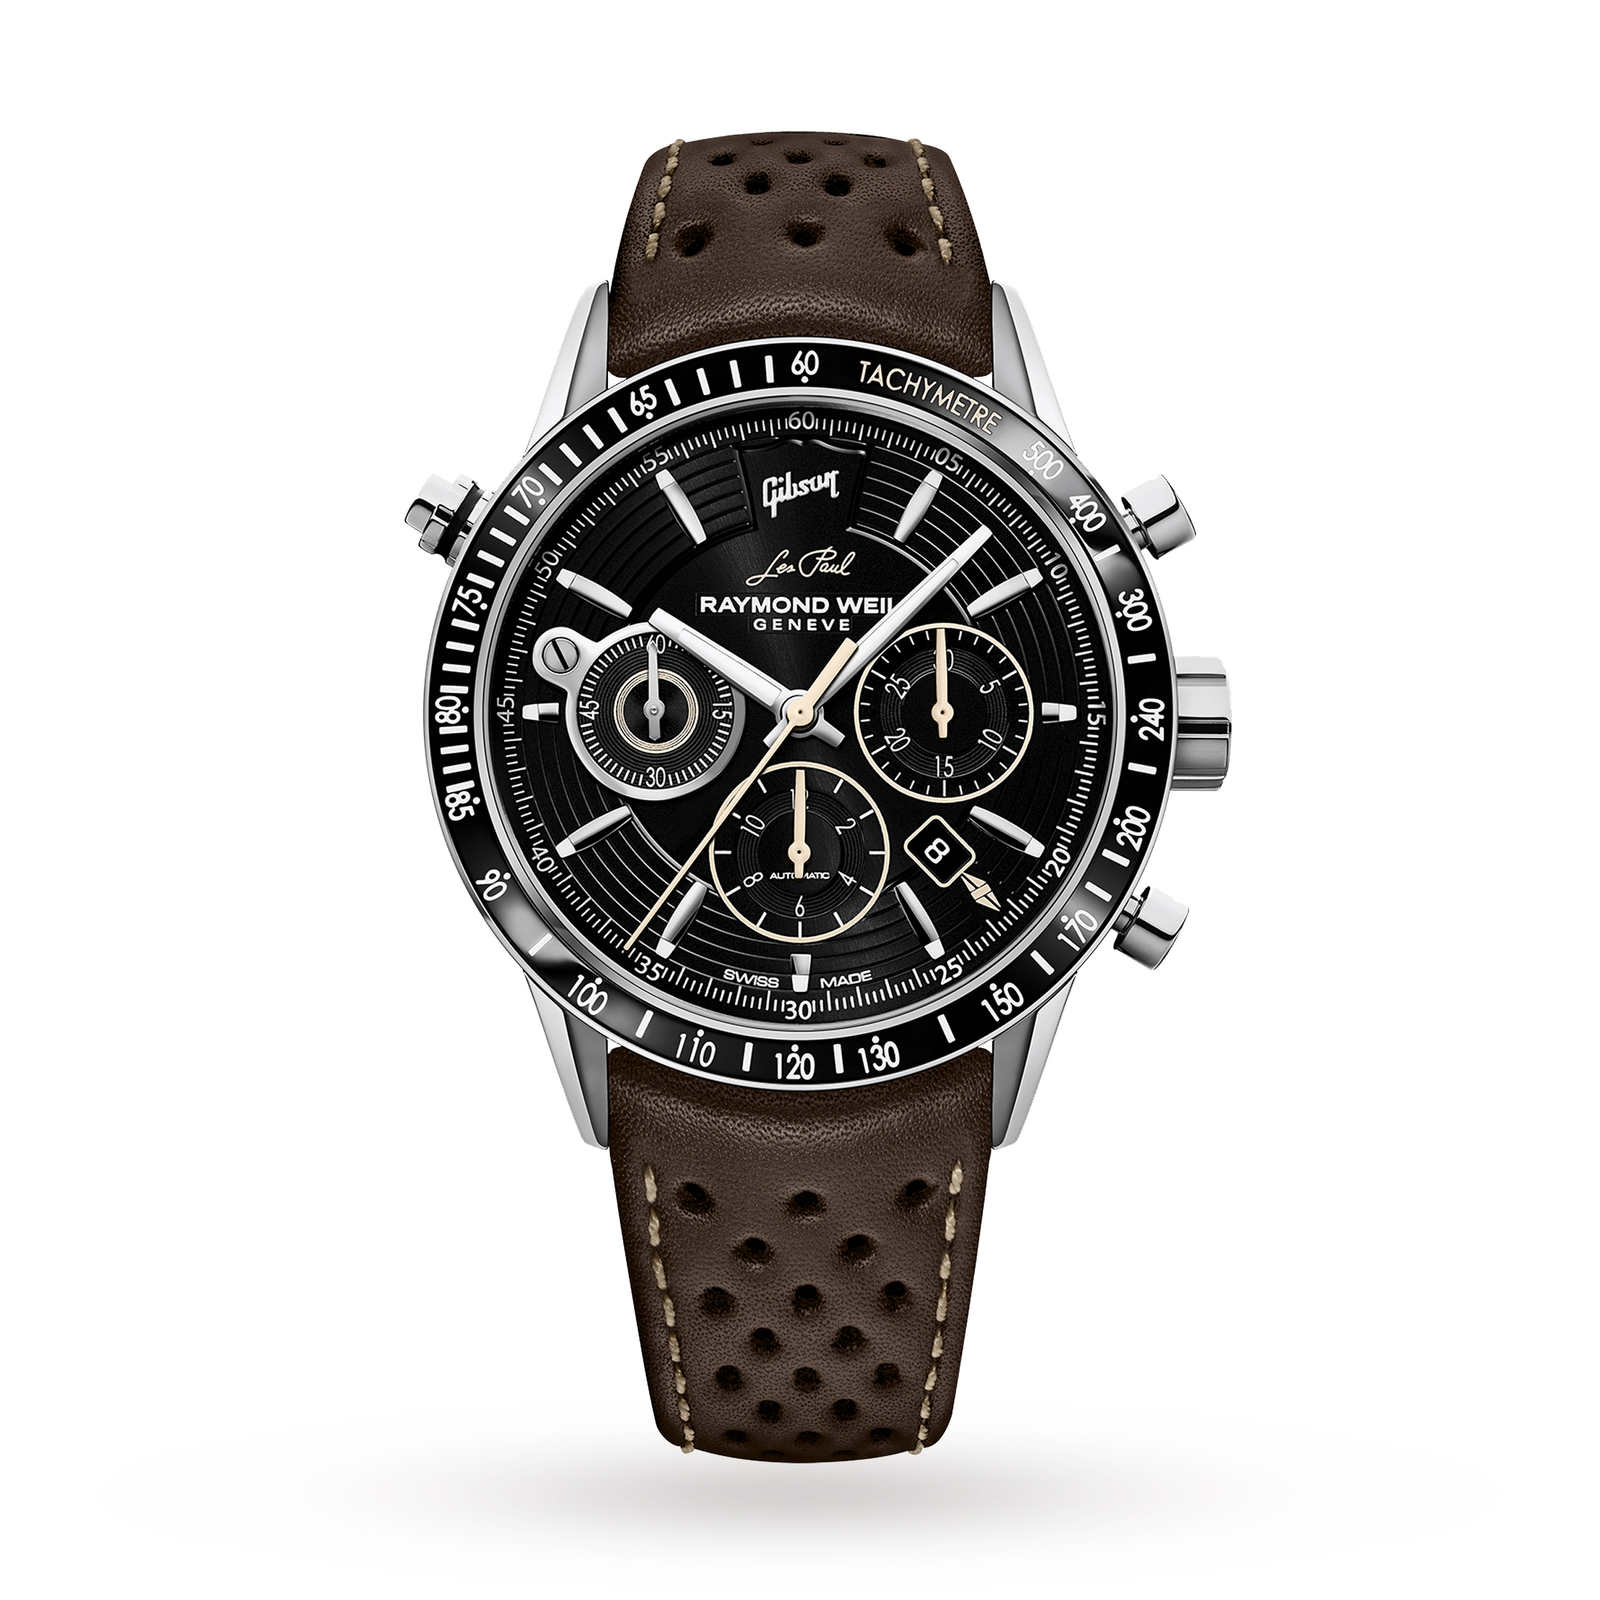 Raymond Weil Men's Freelancer Gibson Les Paul Limited Edition Automatic Chronograph Watch 7740-STC-L